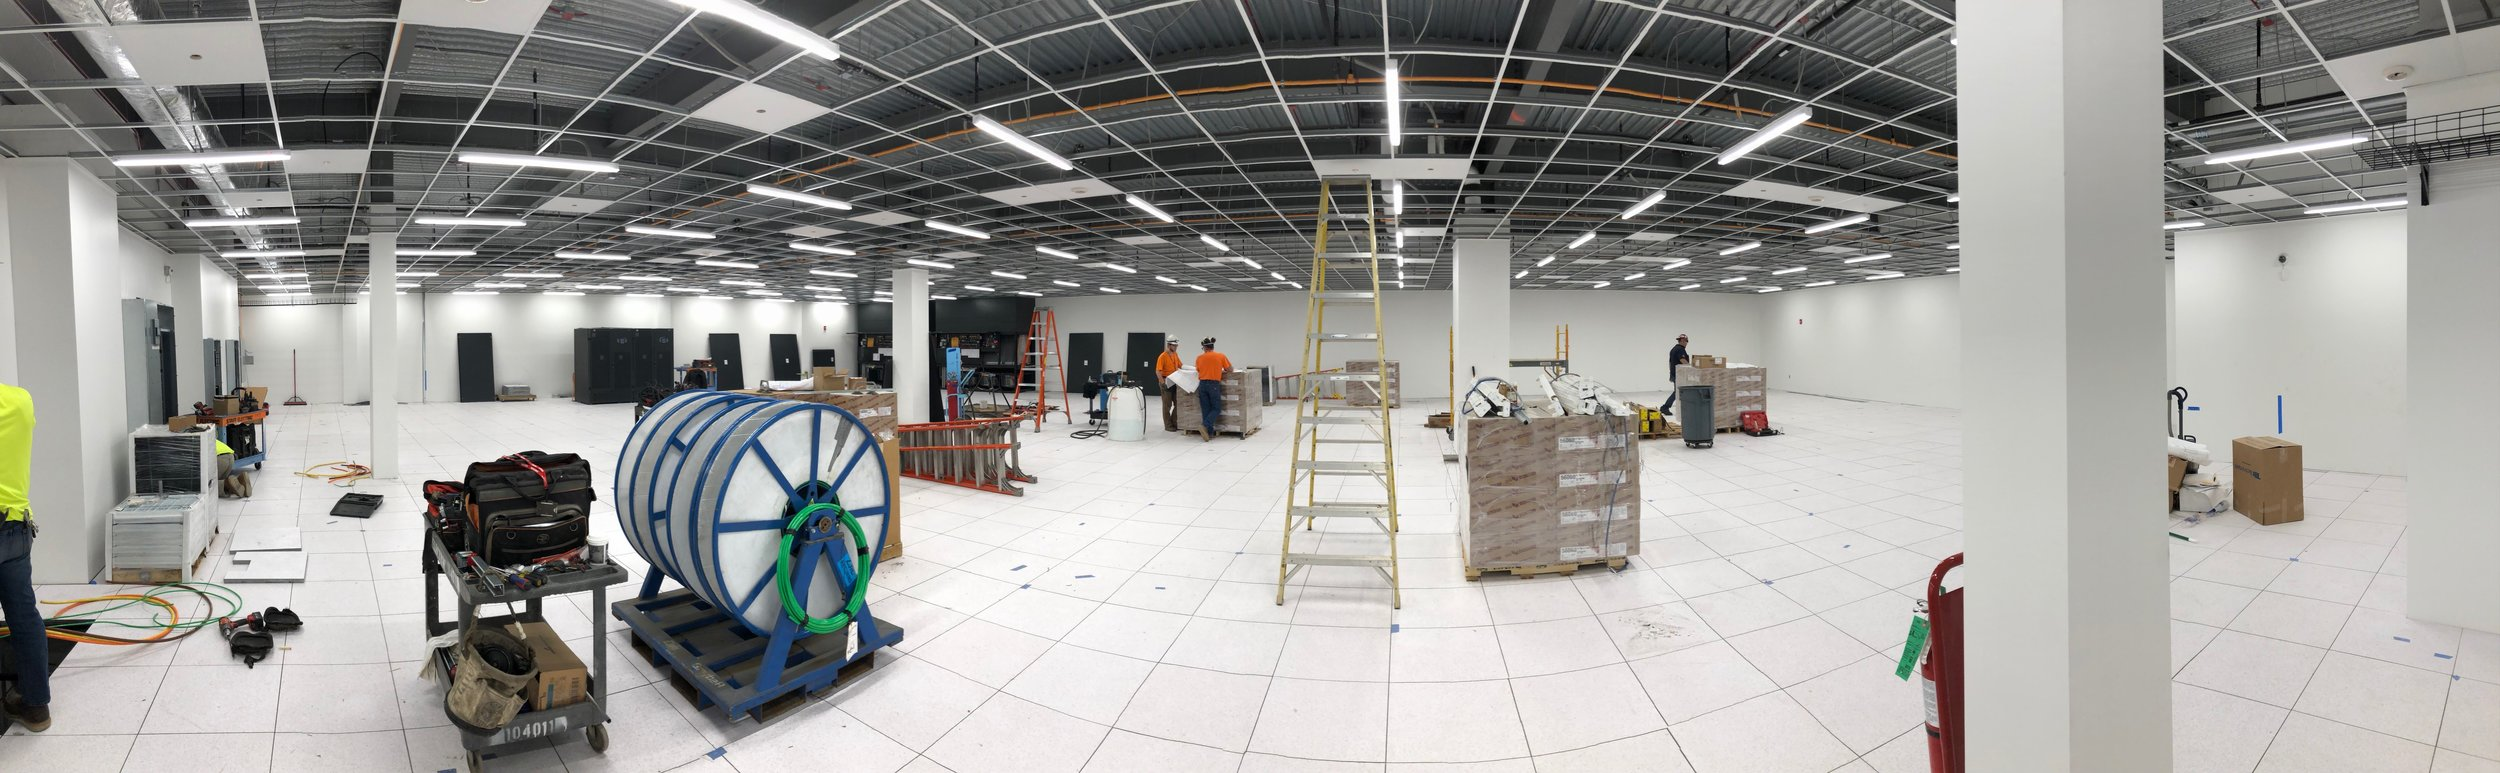 Week of June 24th - June 28th, 2019   Ceiling gride complete, lighting set into place and ready for ceiling tiles.